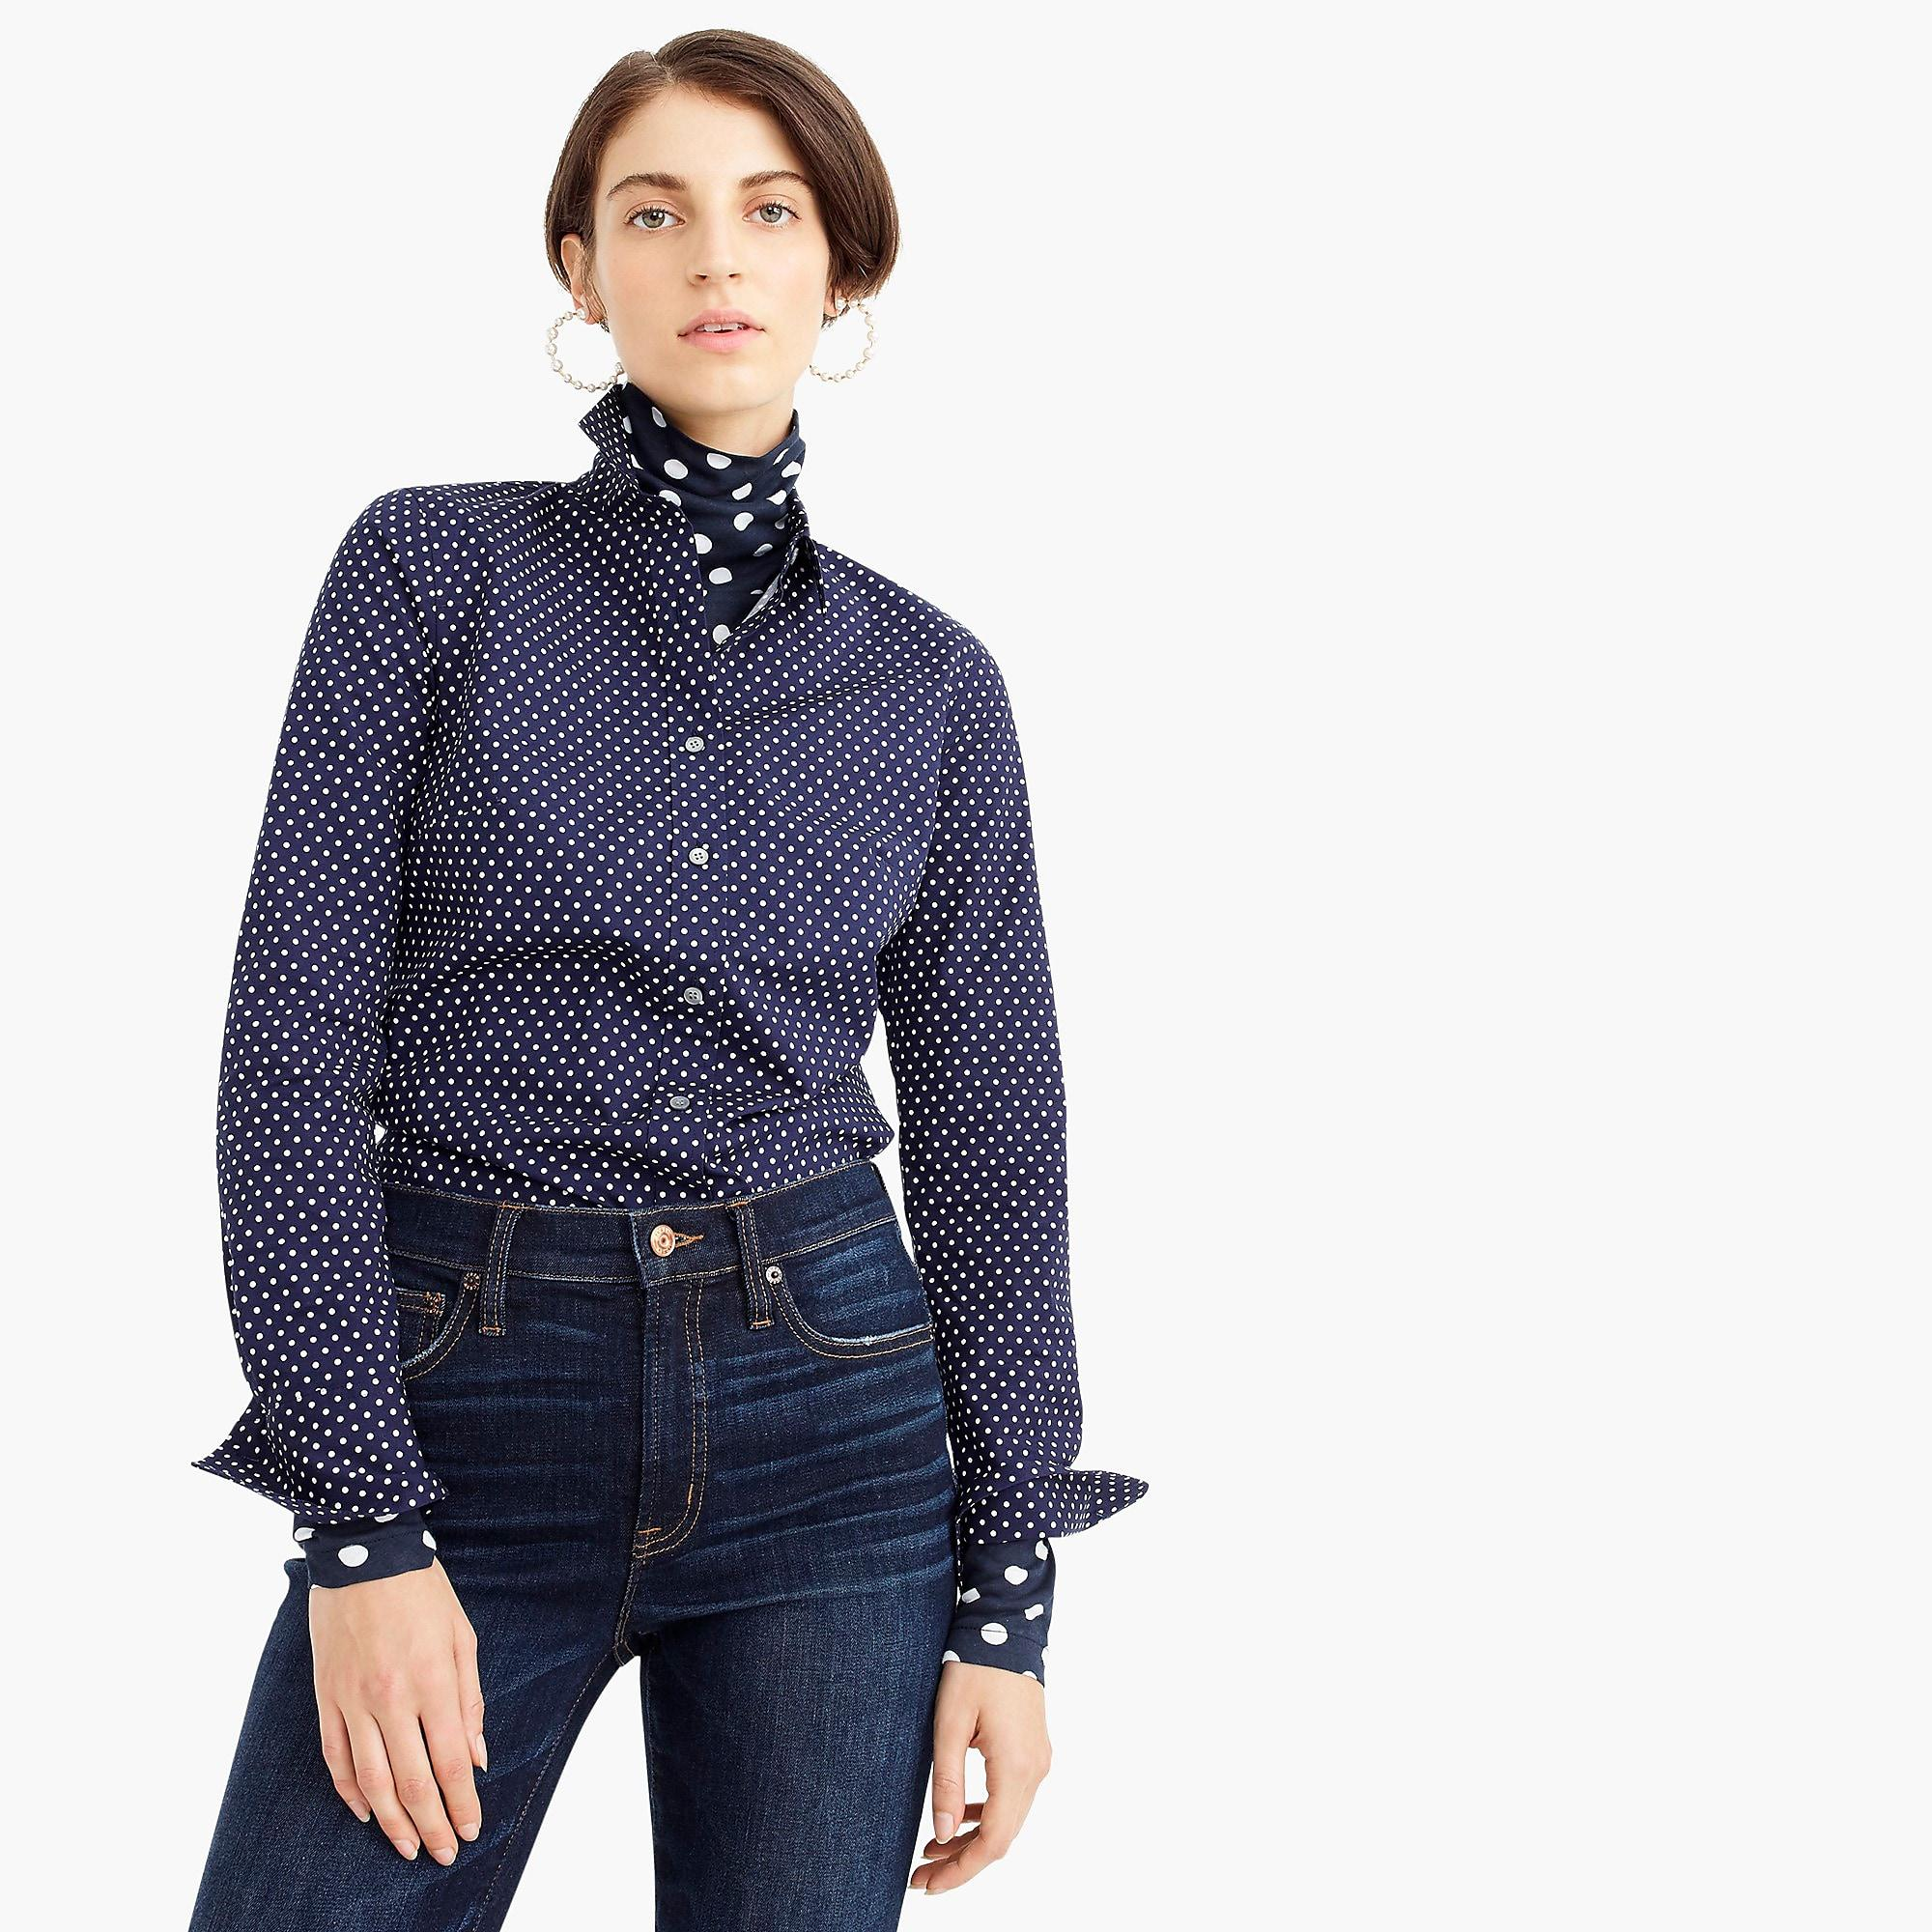 3eeaee9d2836 J.Crew Slim Stretch Perfect Shirt In Polka Dot in Blue - Lyst